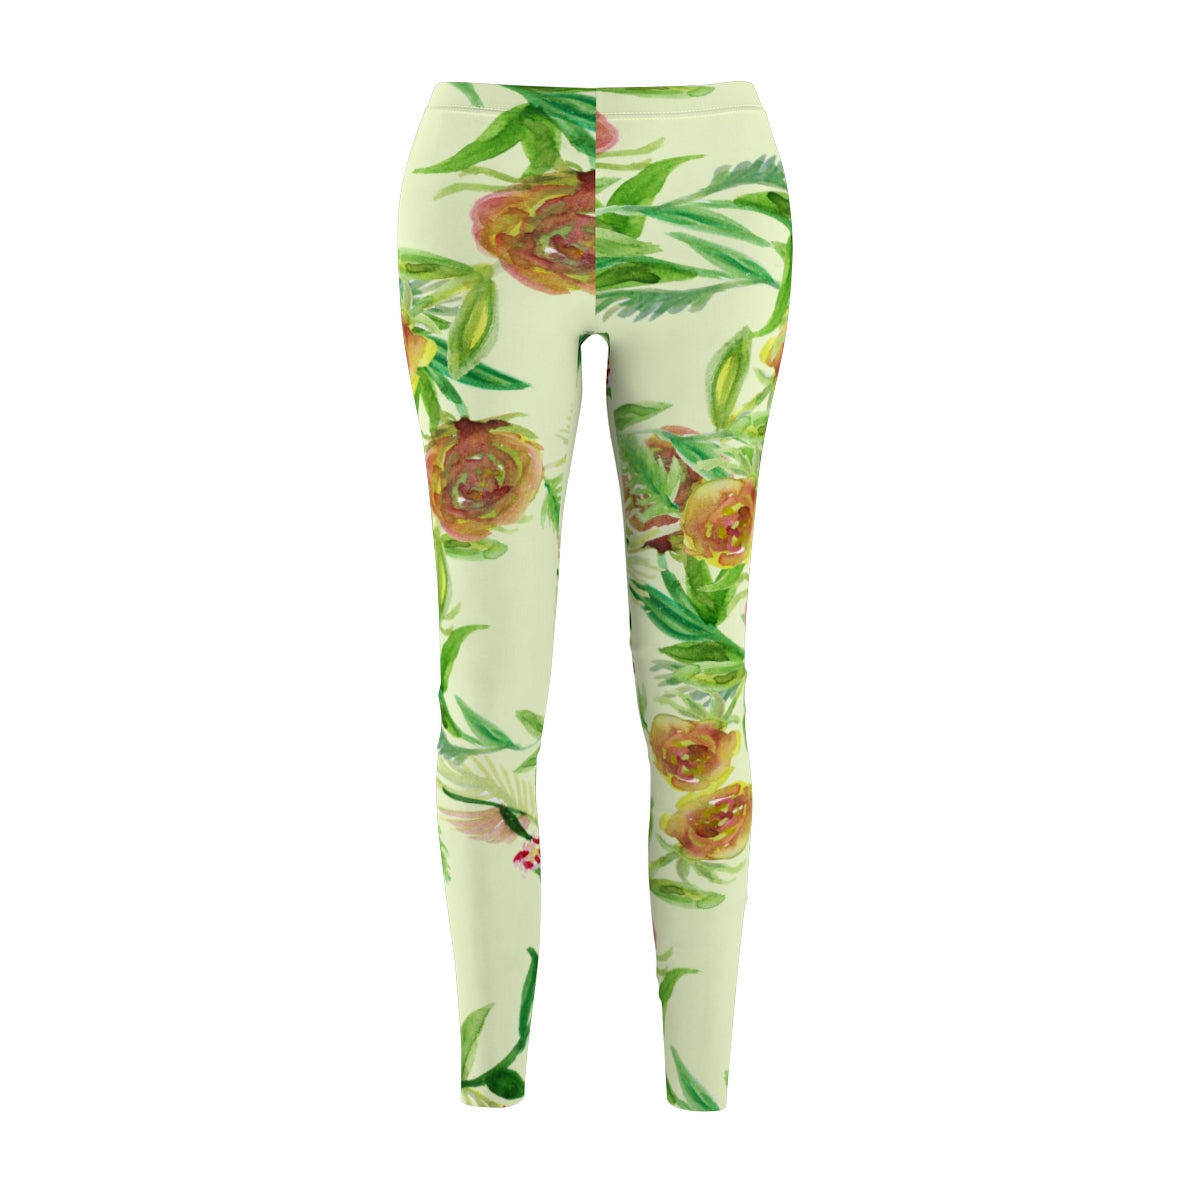 Light Yellow Rose Floral Print Women's Tights / Casual Leggings - Made in USA (US Size: XS-2XL)-Casual Leggings-M-Heidi Kimura Art LLC